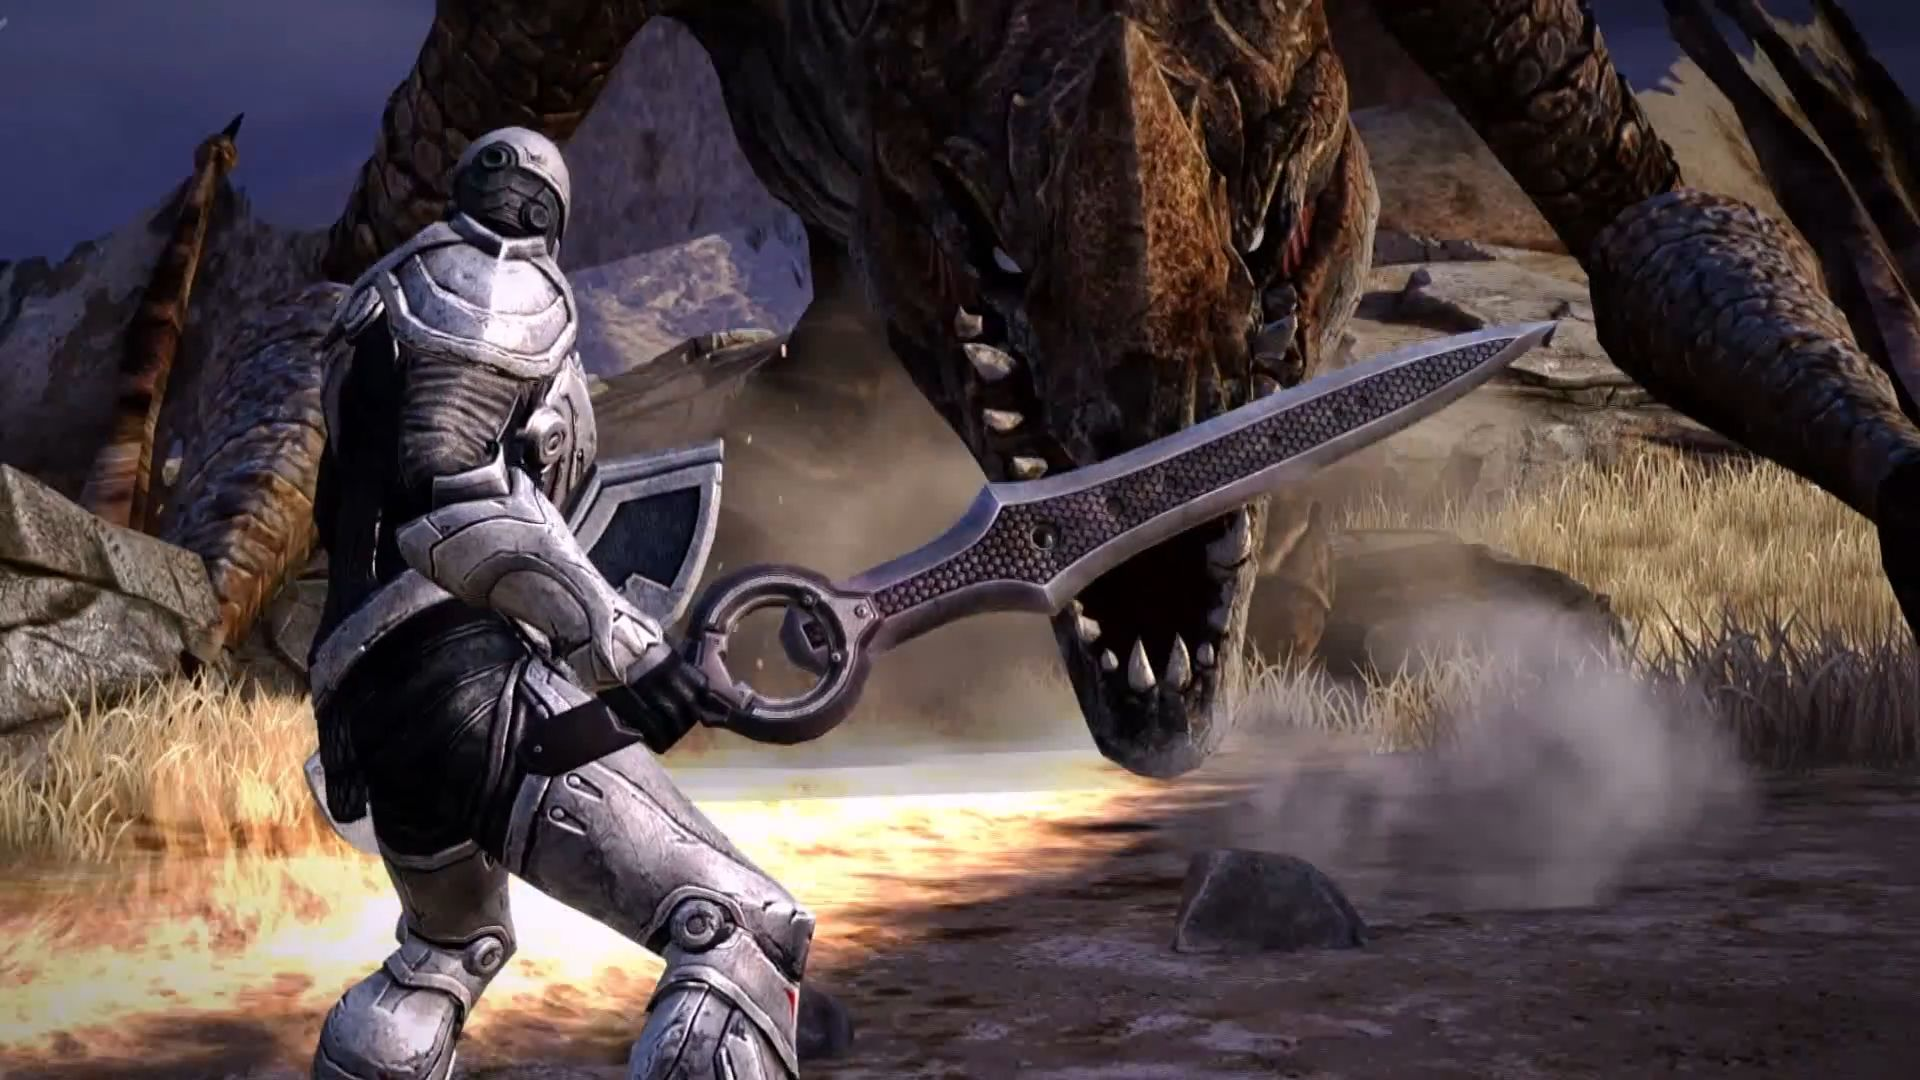 InfinityBlade3_1 - International Mobile Gaming Awards